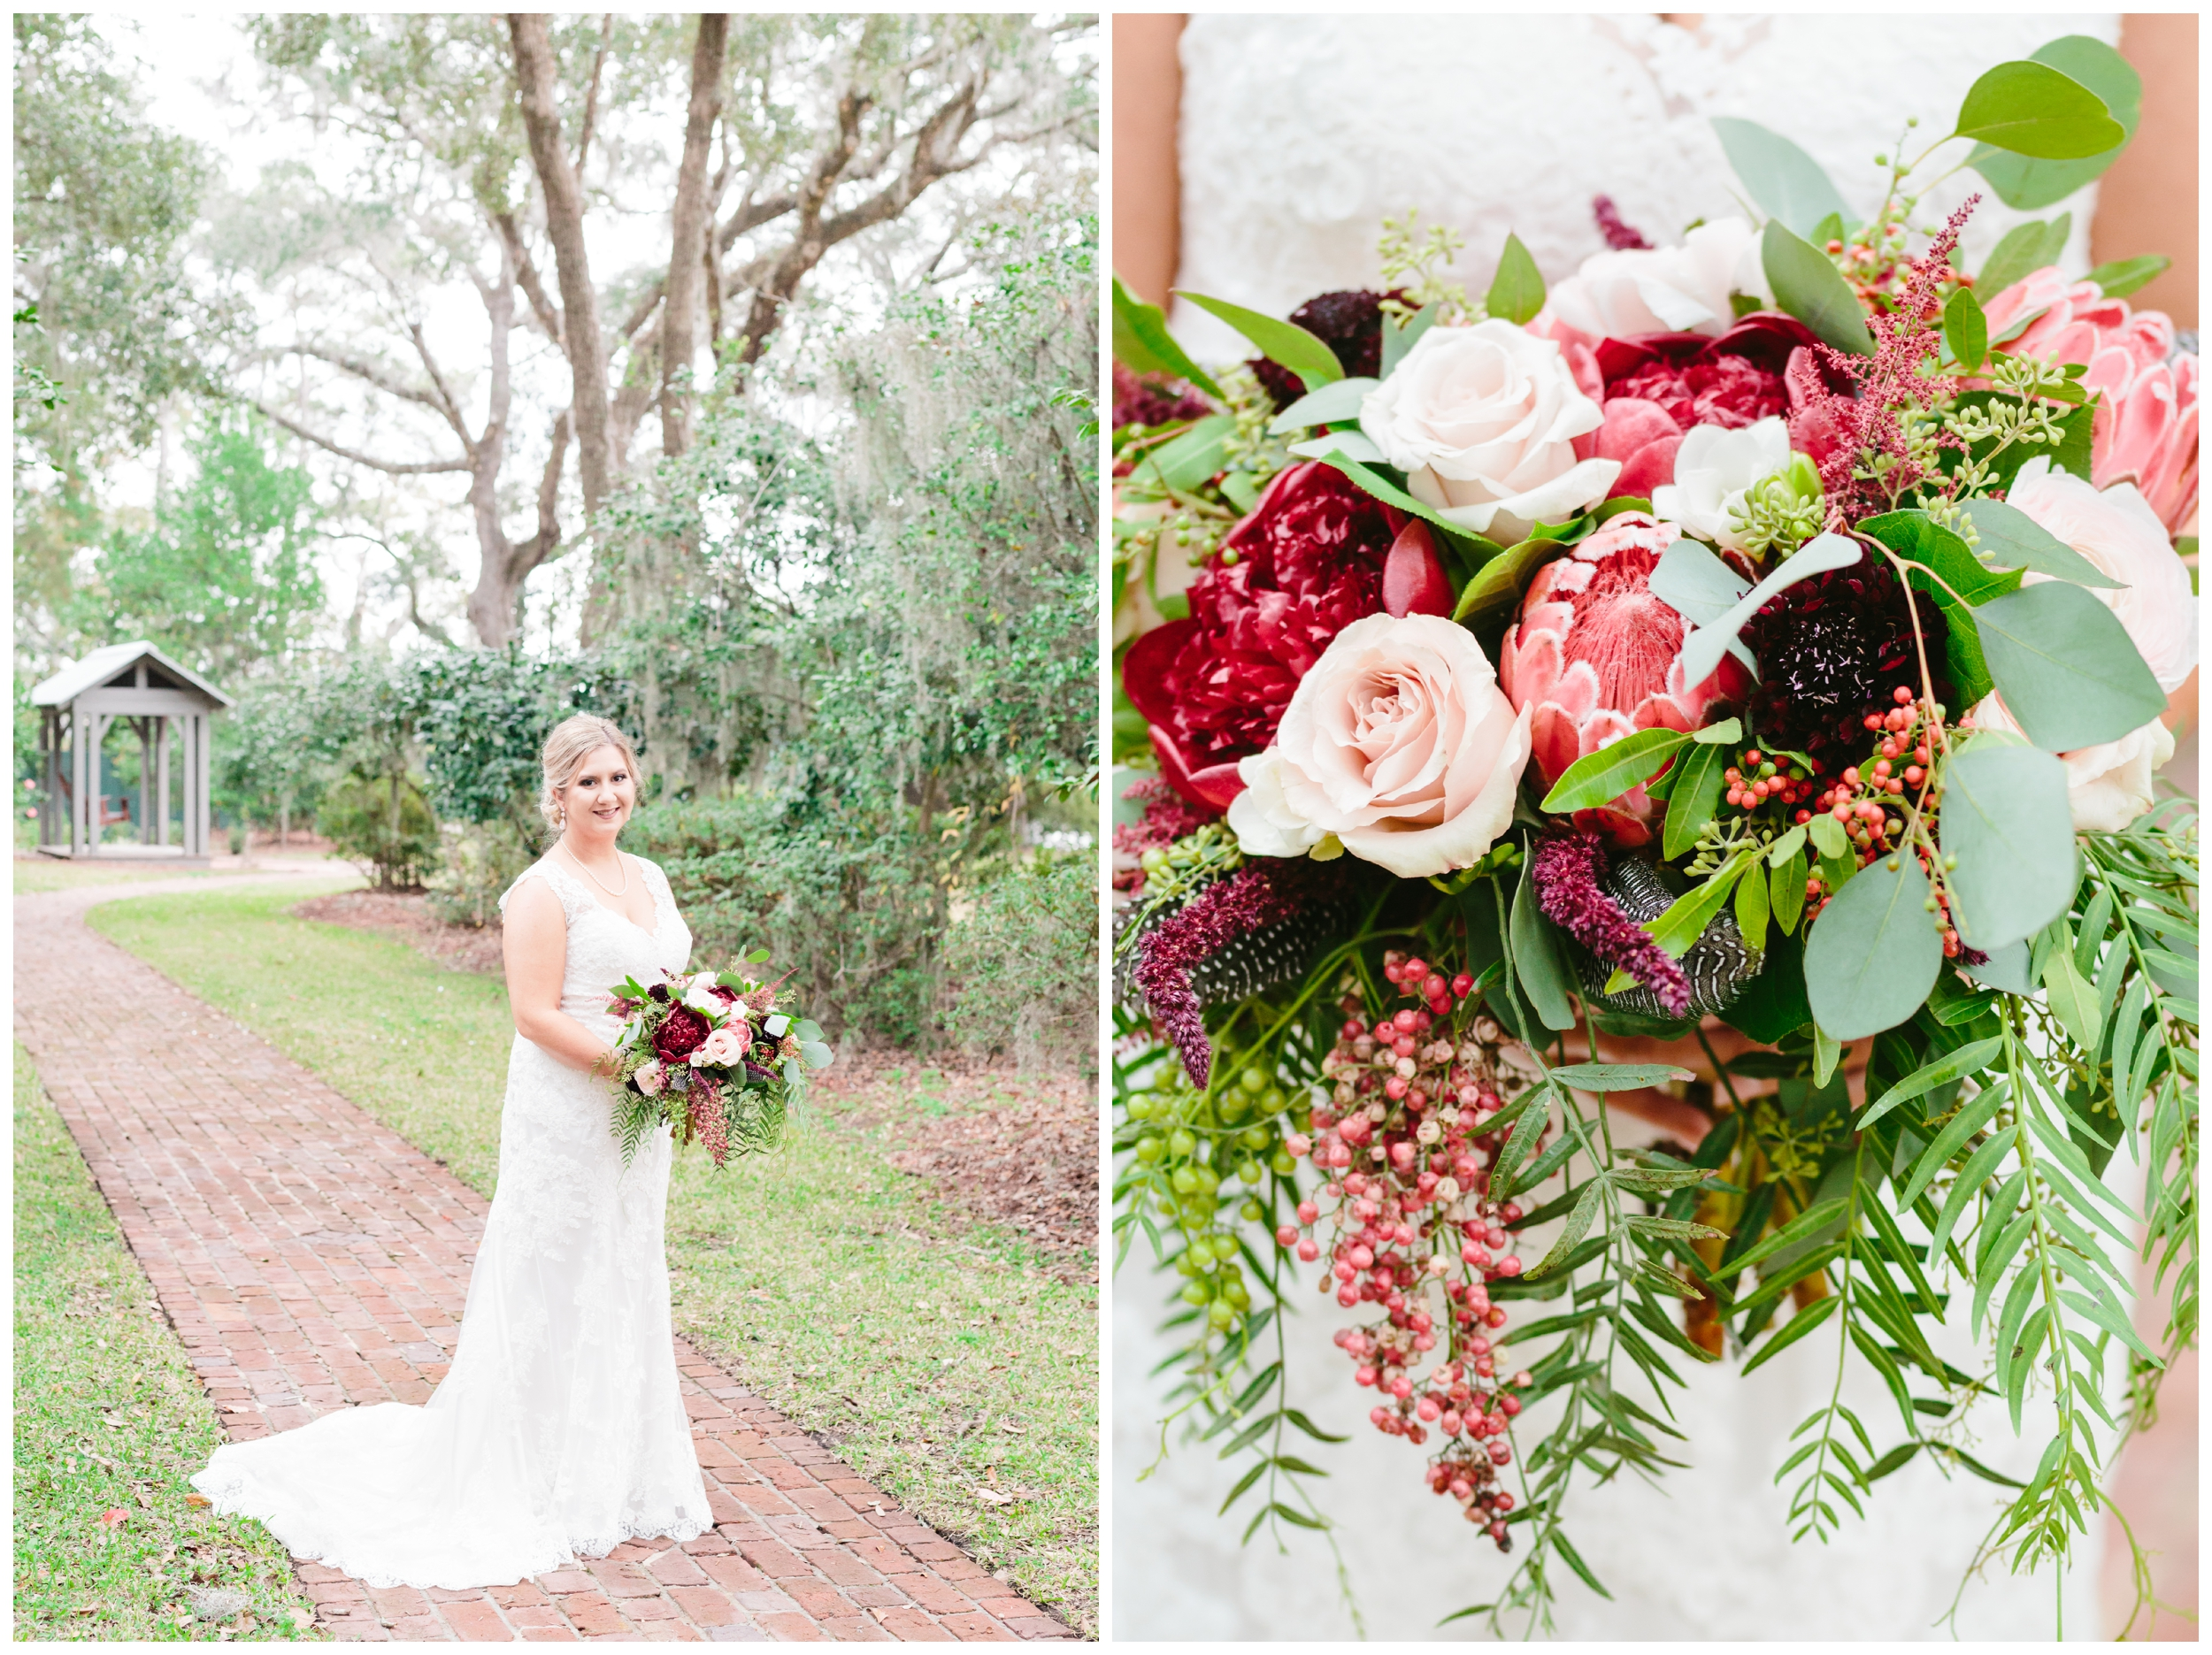 the bride looked beautiful for her portraits. the bouquet designed by frampton's florals was the perfect pop of fall color!